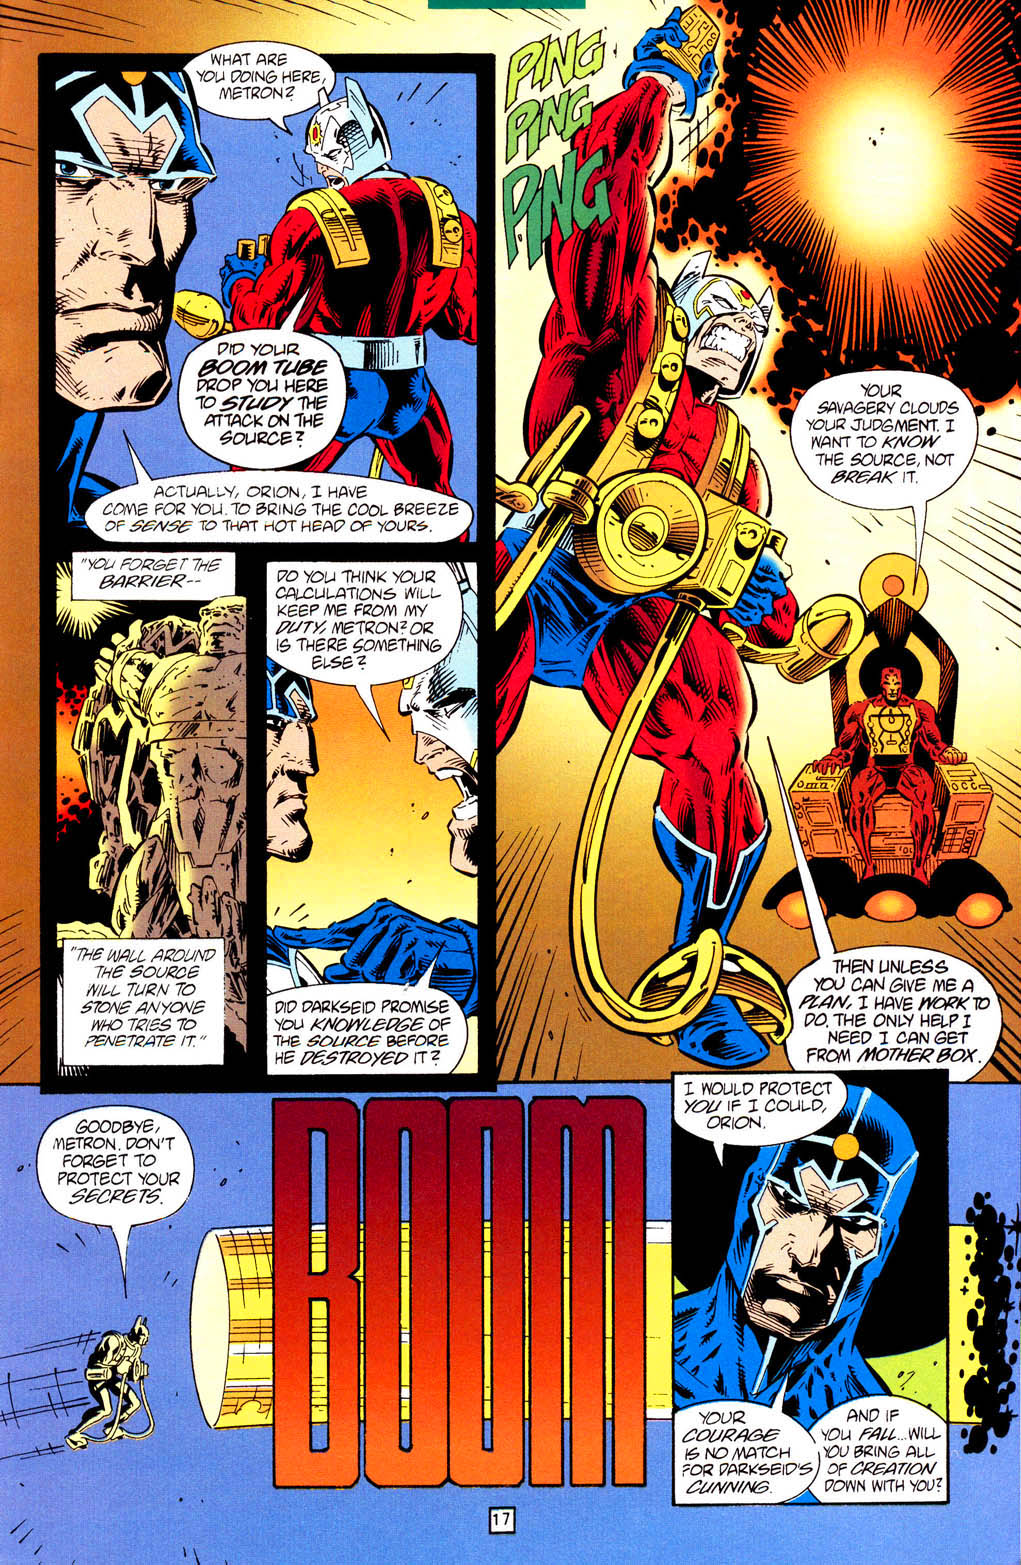 New Gods (1995) #1 pg.17, lettered by Clem Robins.